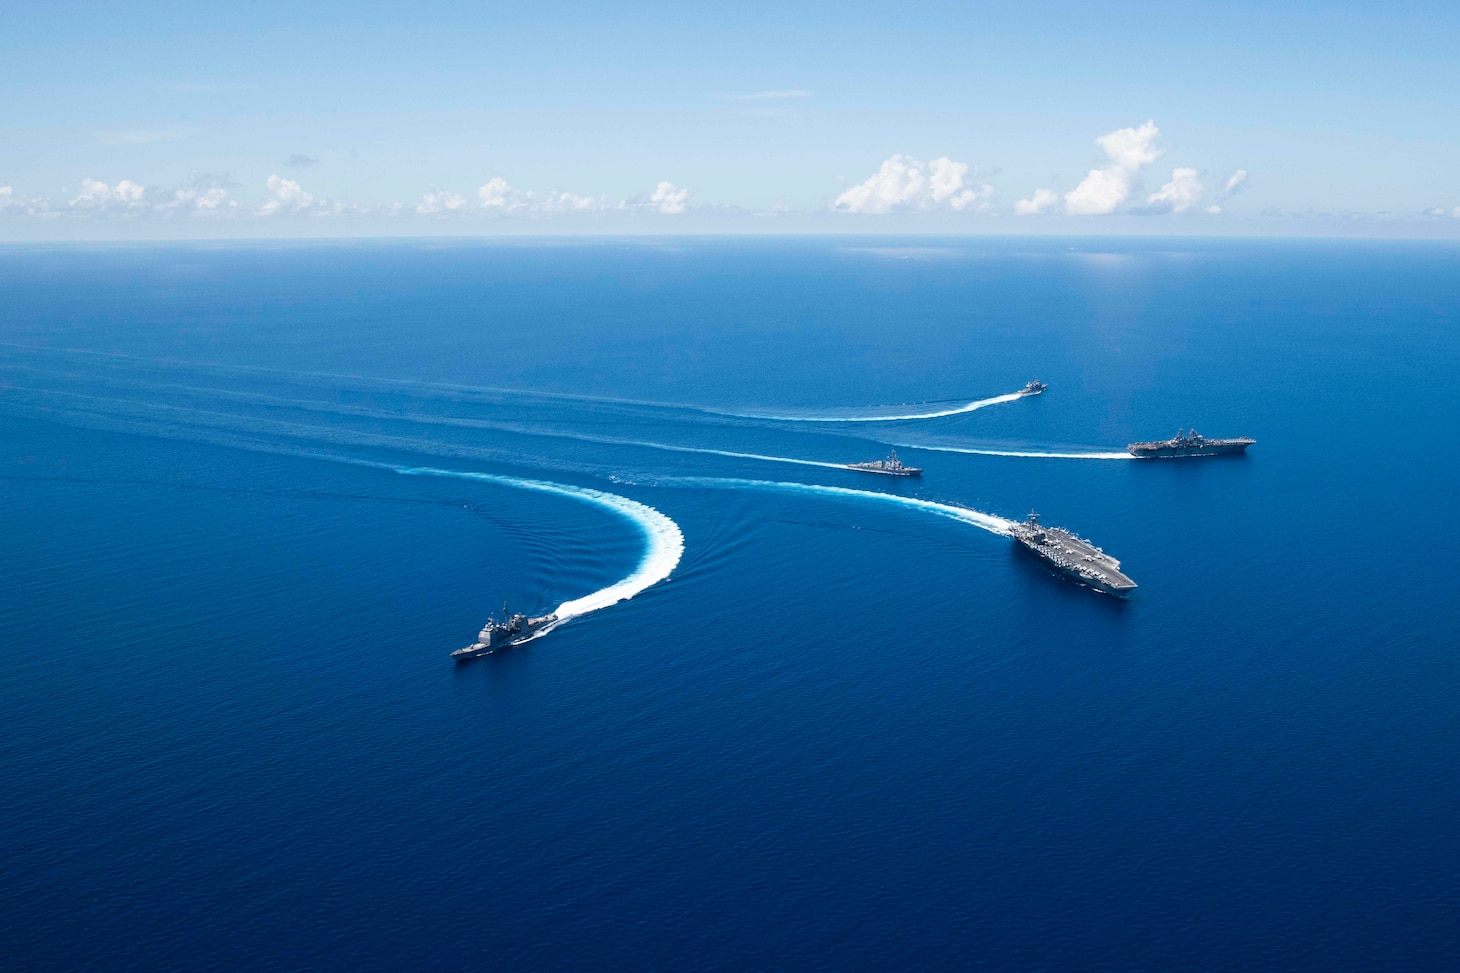 191006-N-VI515-0567 SOUTH CHINA SEA (October 6, 2019) Ships from Ronald Reagan Carrier Strike Group and Boxer Amphibious Ready Group conduct breakaway maneuvers while sailing in formation during security and stability operations in the U.S. 7th Fleet area of operations. U.S. 7th Fleet is the largest numbered fleet in the world, and the U.S. Navy has operated in the Indo-Pacific region for more than 70 years, providing credible, ready forces to help preserve peace and prevent conflict.